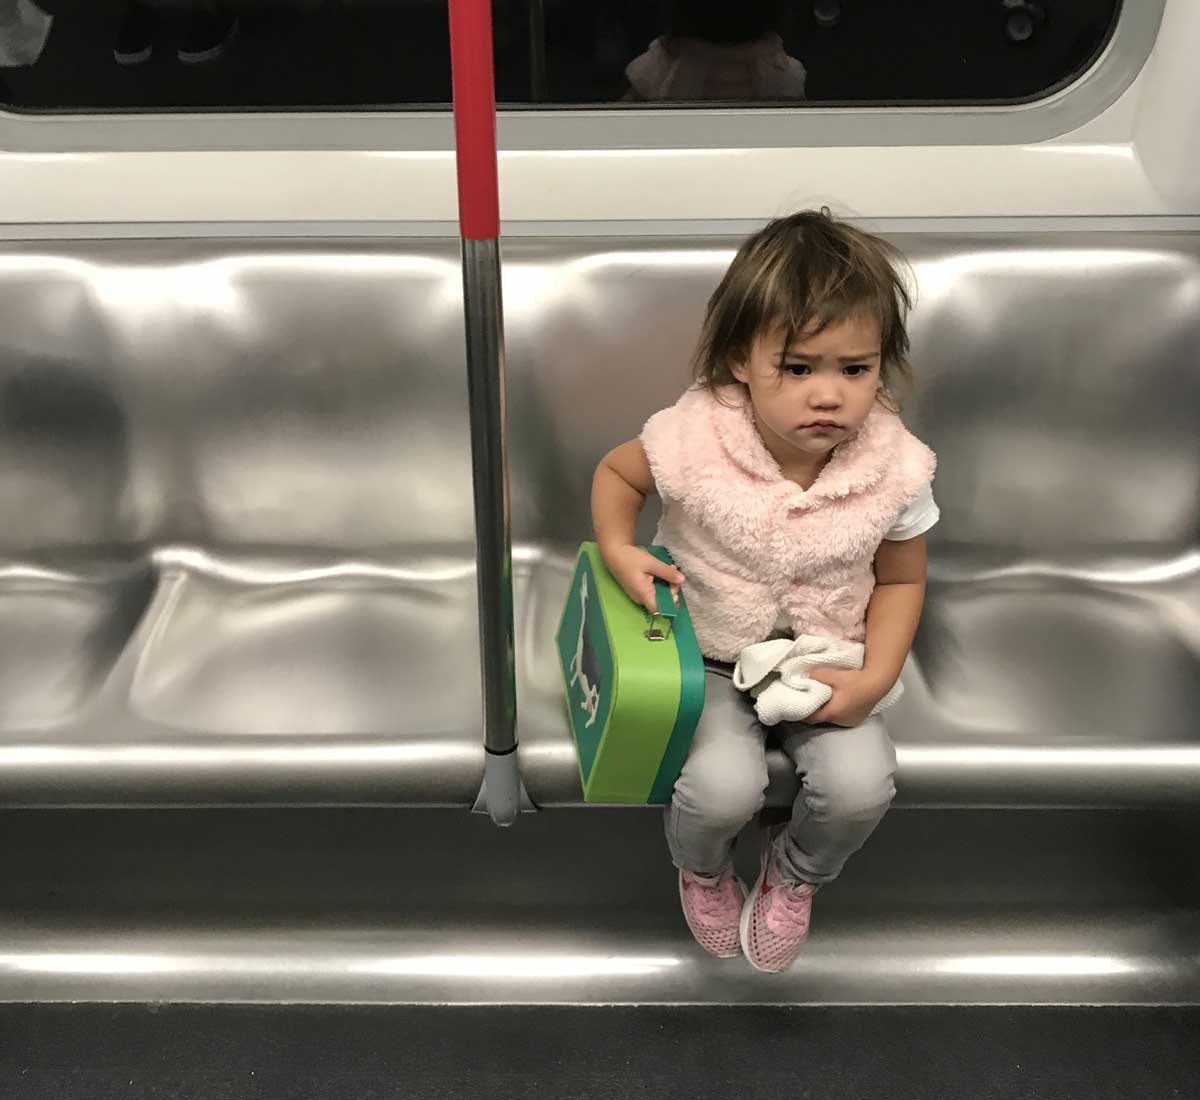 A toddler sits on an MTR train, looking forlorn and clutching her little green suitcase